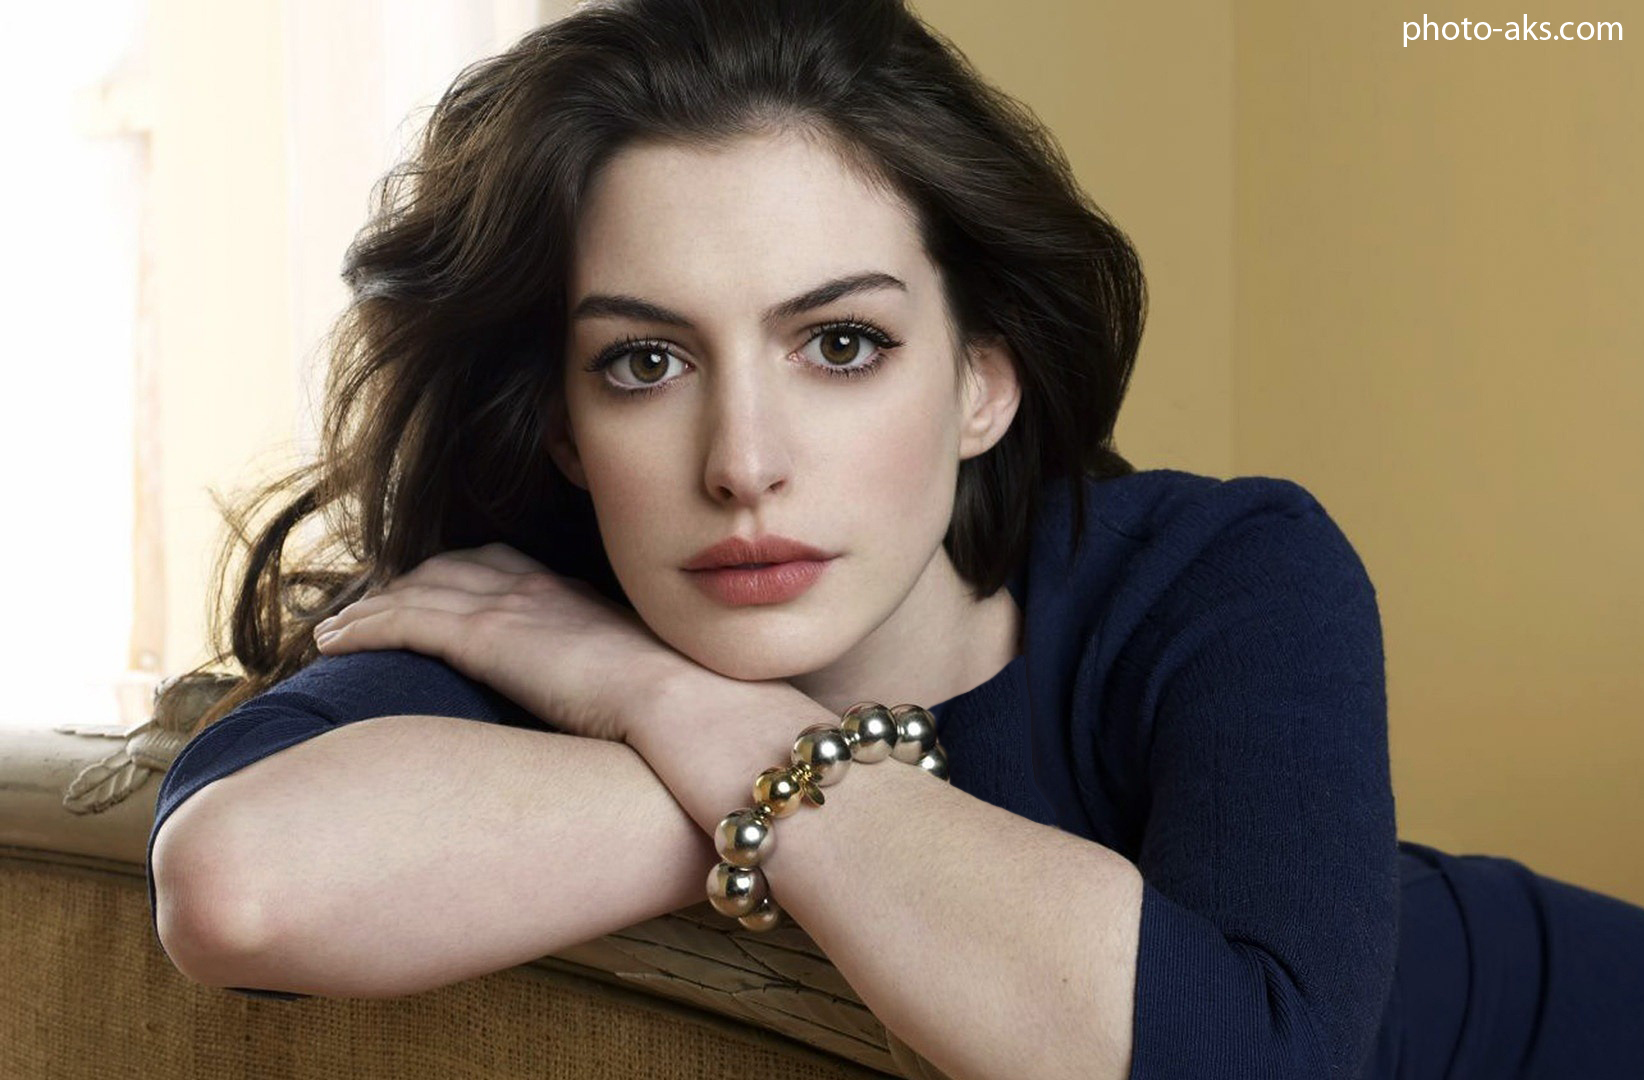 http://pic.photo-aks.com/photo/actor/bazigaran-zan/large/anne-hathaway-widescreen.jpg